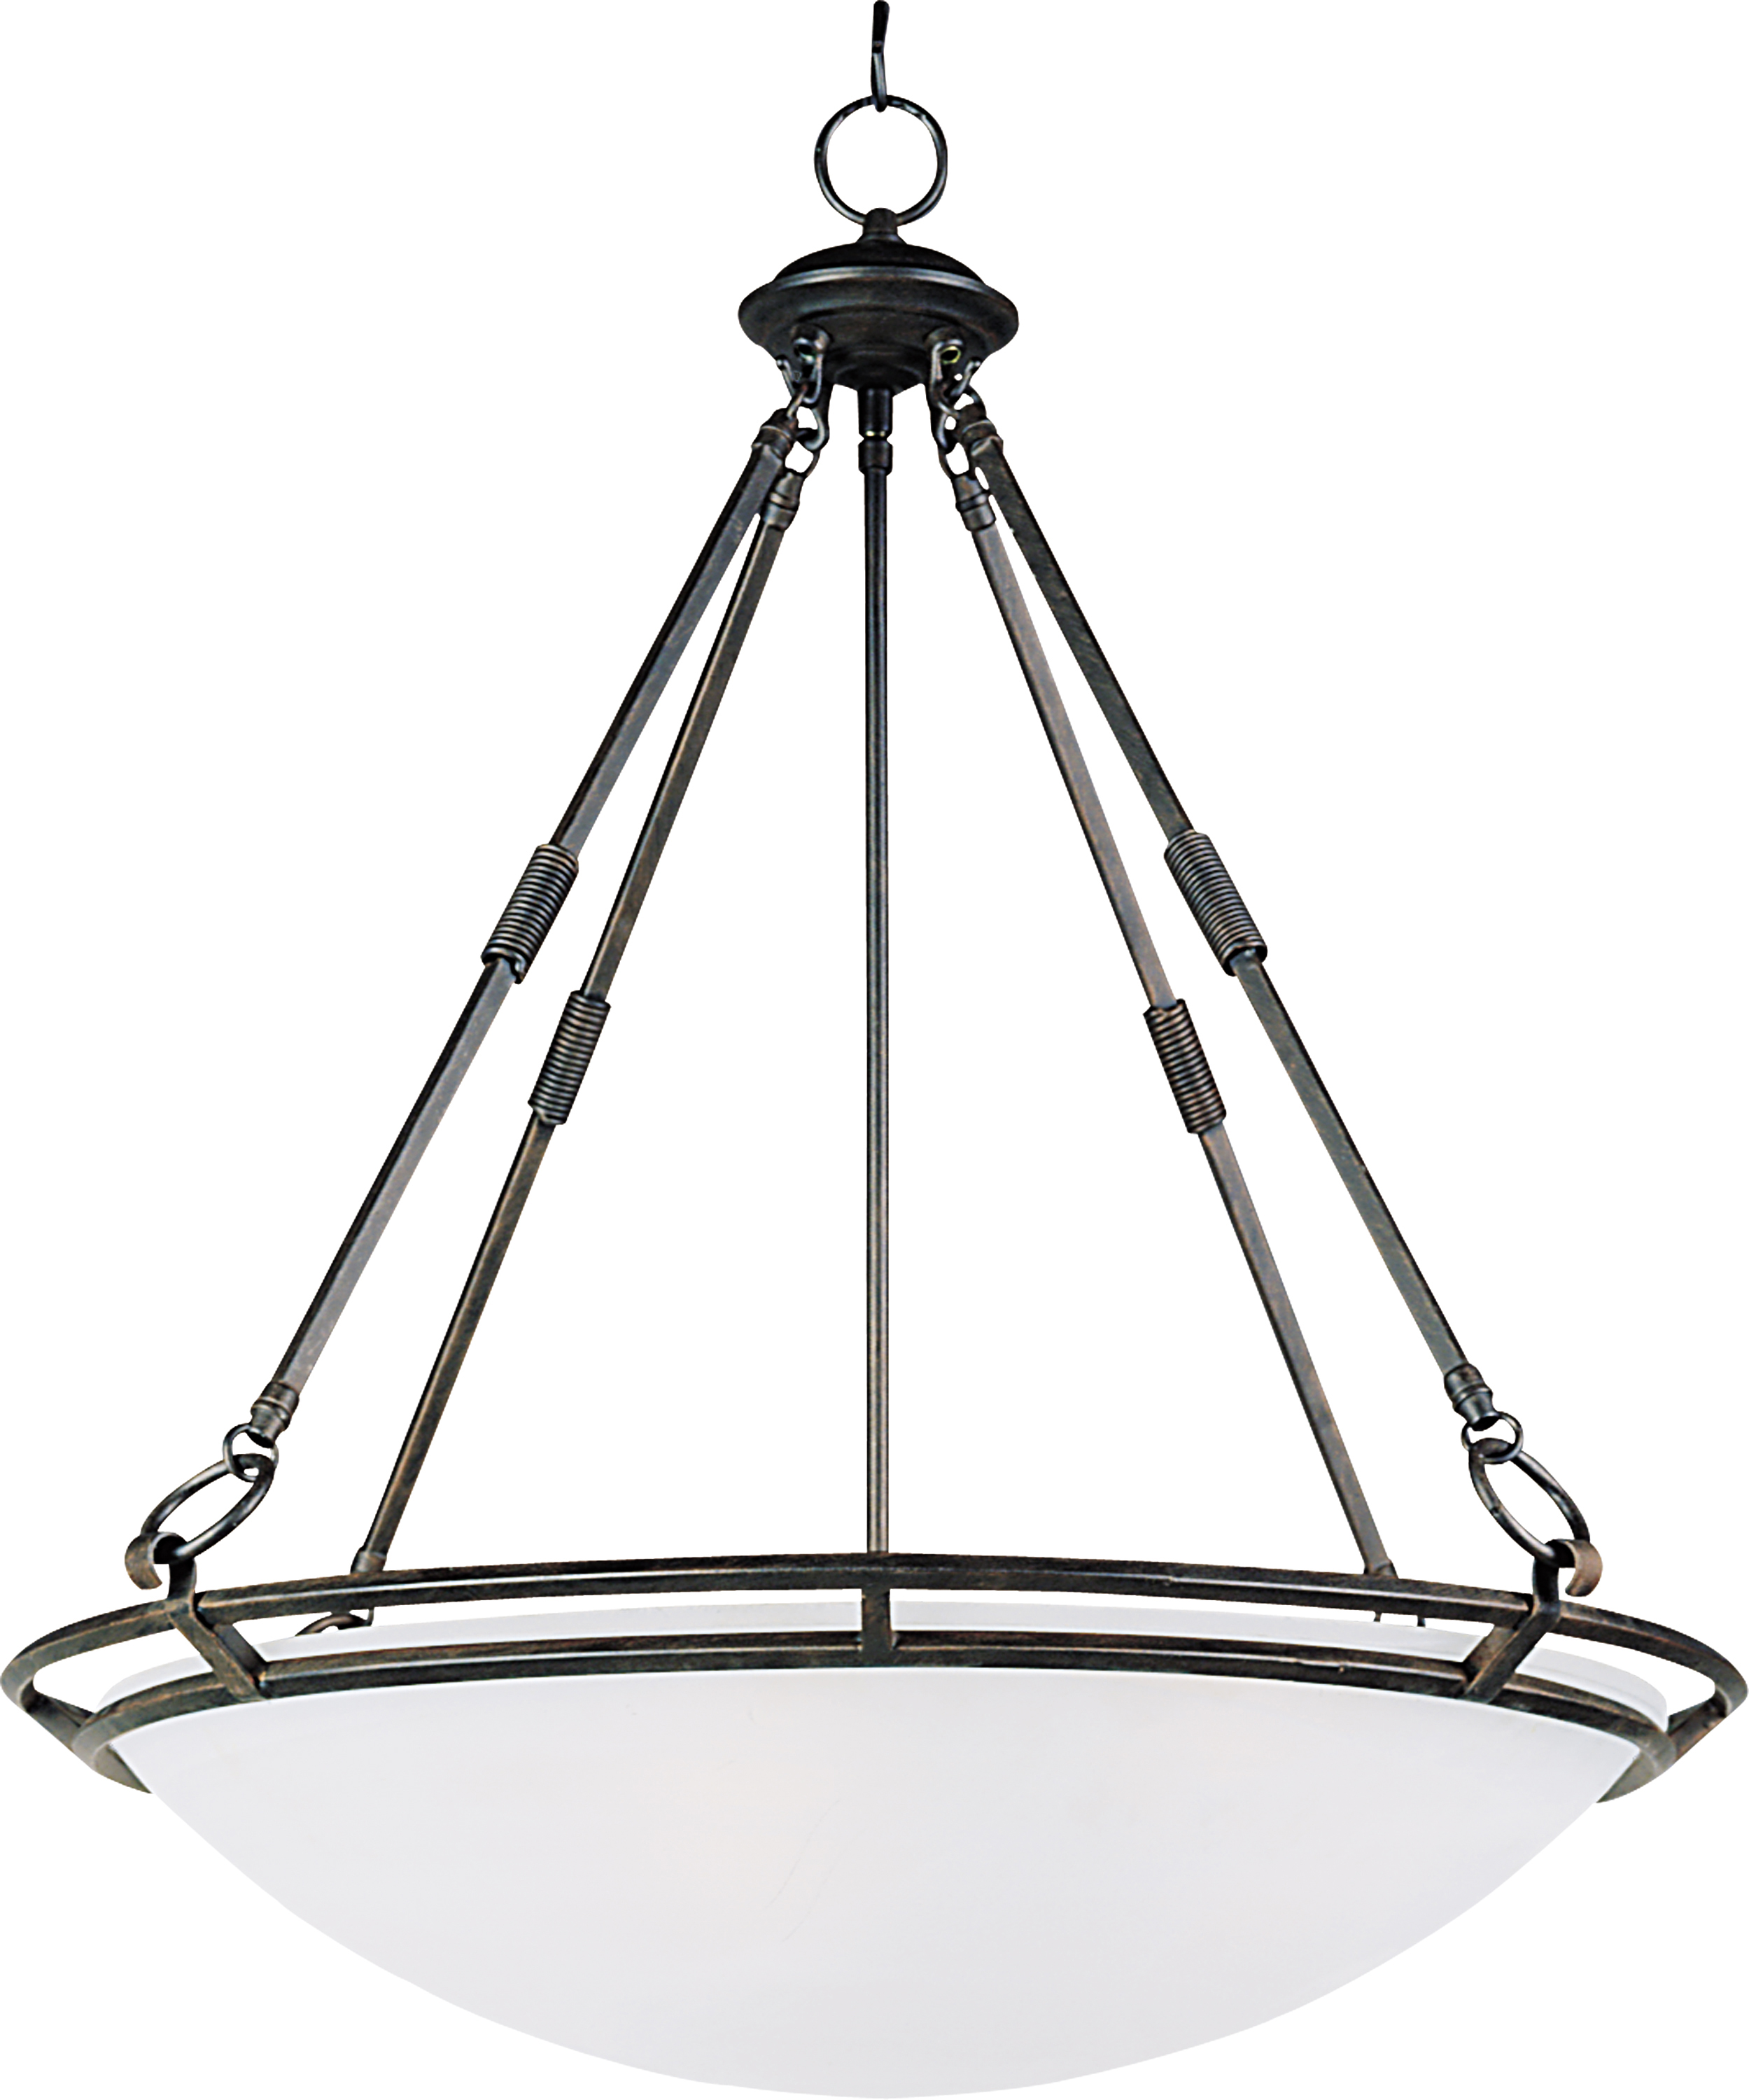 stratus 5-light pendant